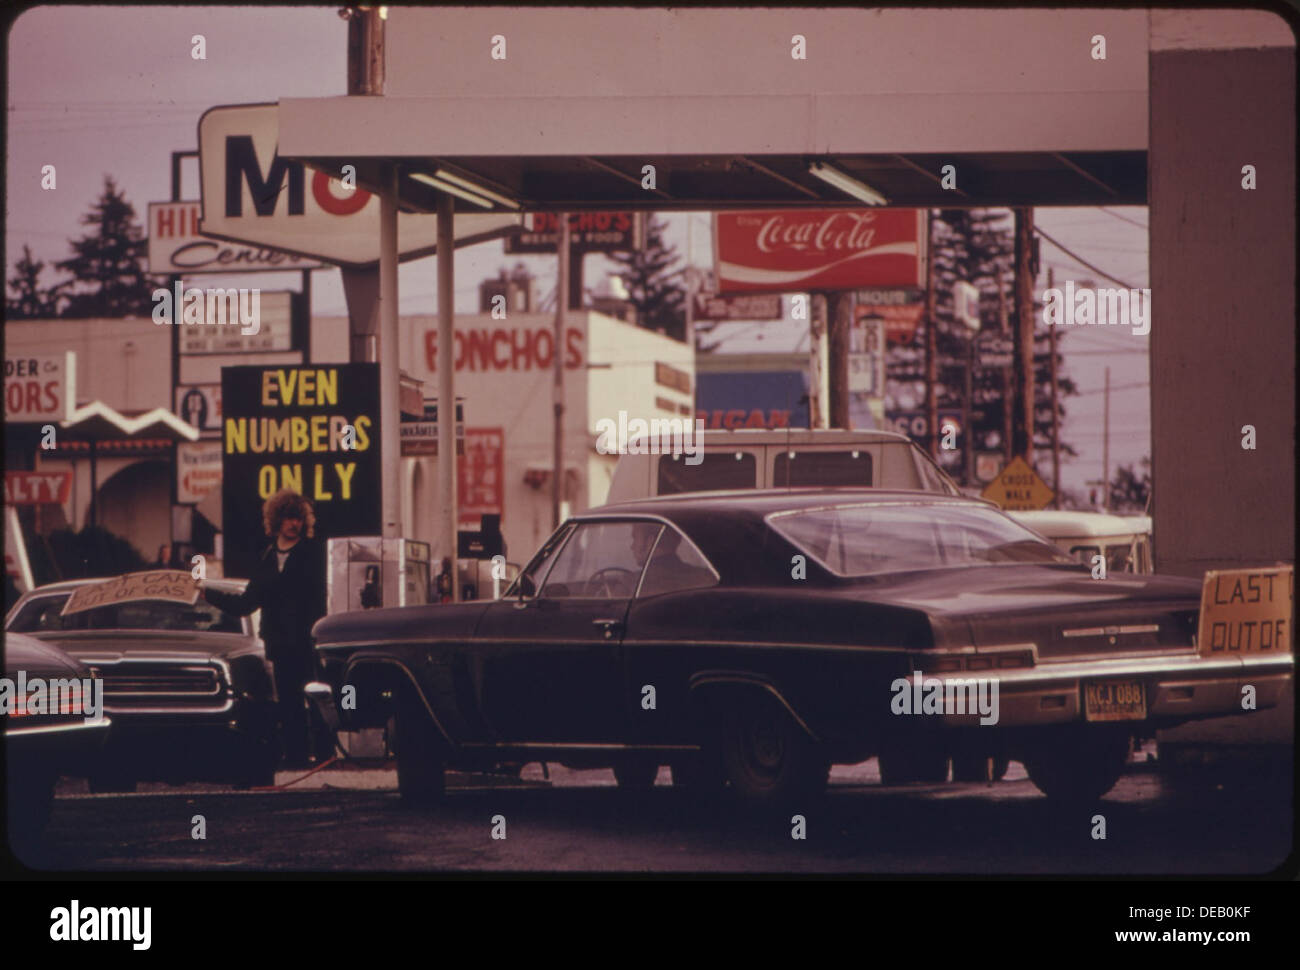 THE STATE OF OREGON WAS THE FIRST TO GO TO A SYSTEM OF ODD AND EVEN NUMBERS DURING THE GASOLINE CRISIS IN THE FALL 555489 - Stock Image